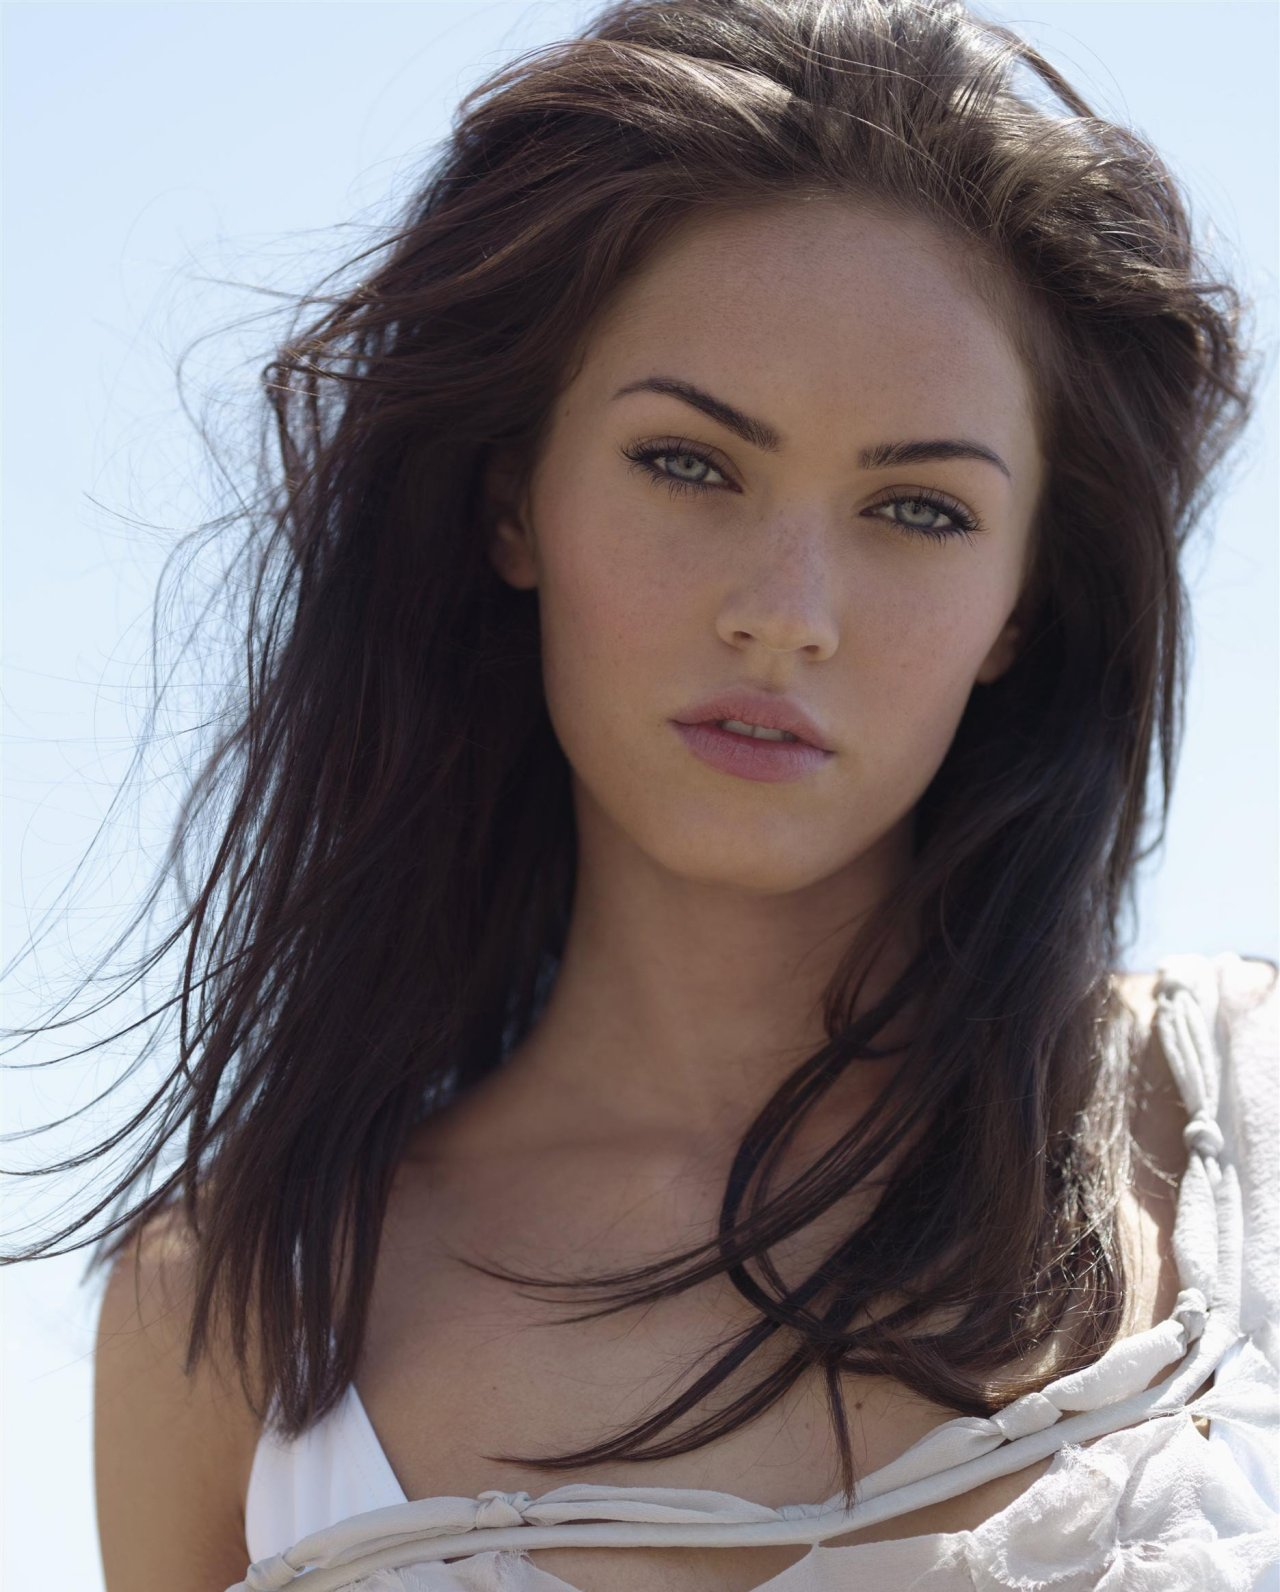 Fotos de Megan Fox - YouTube